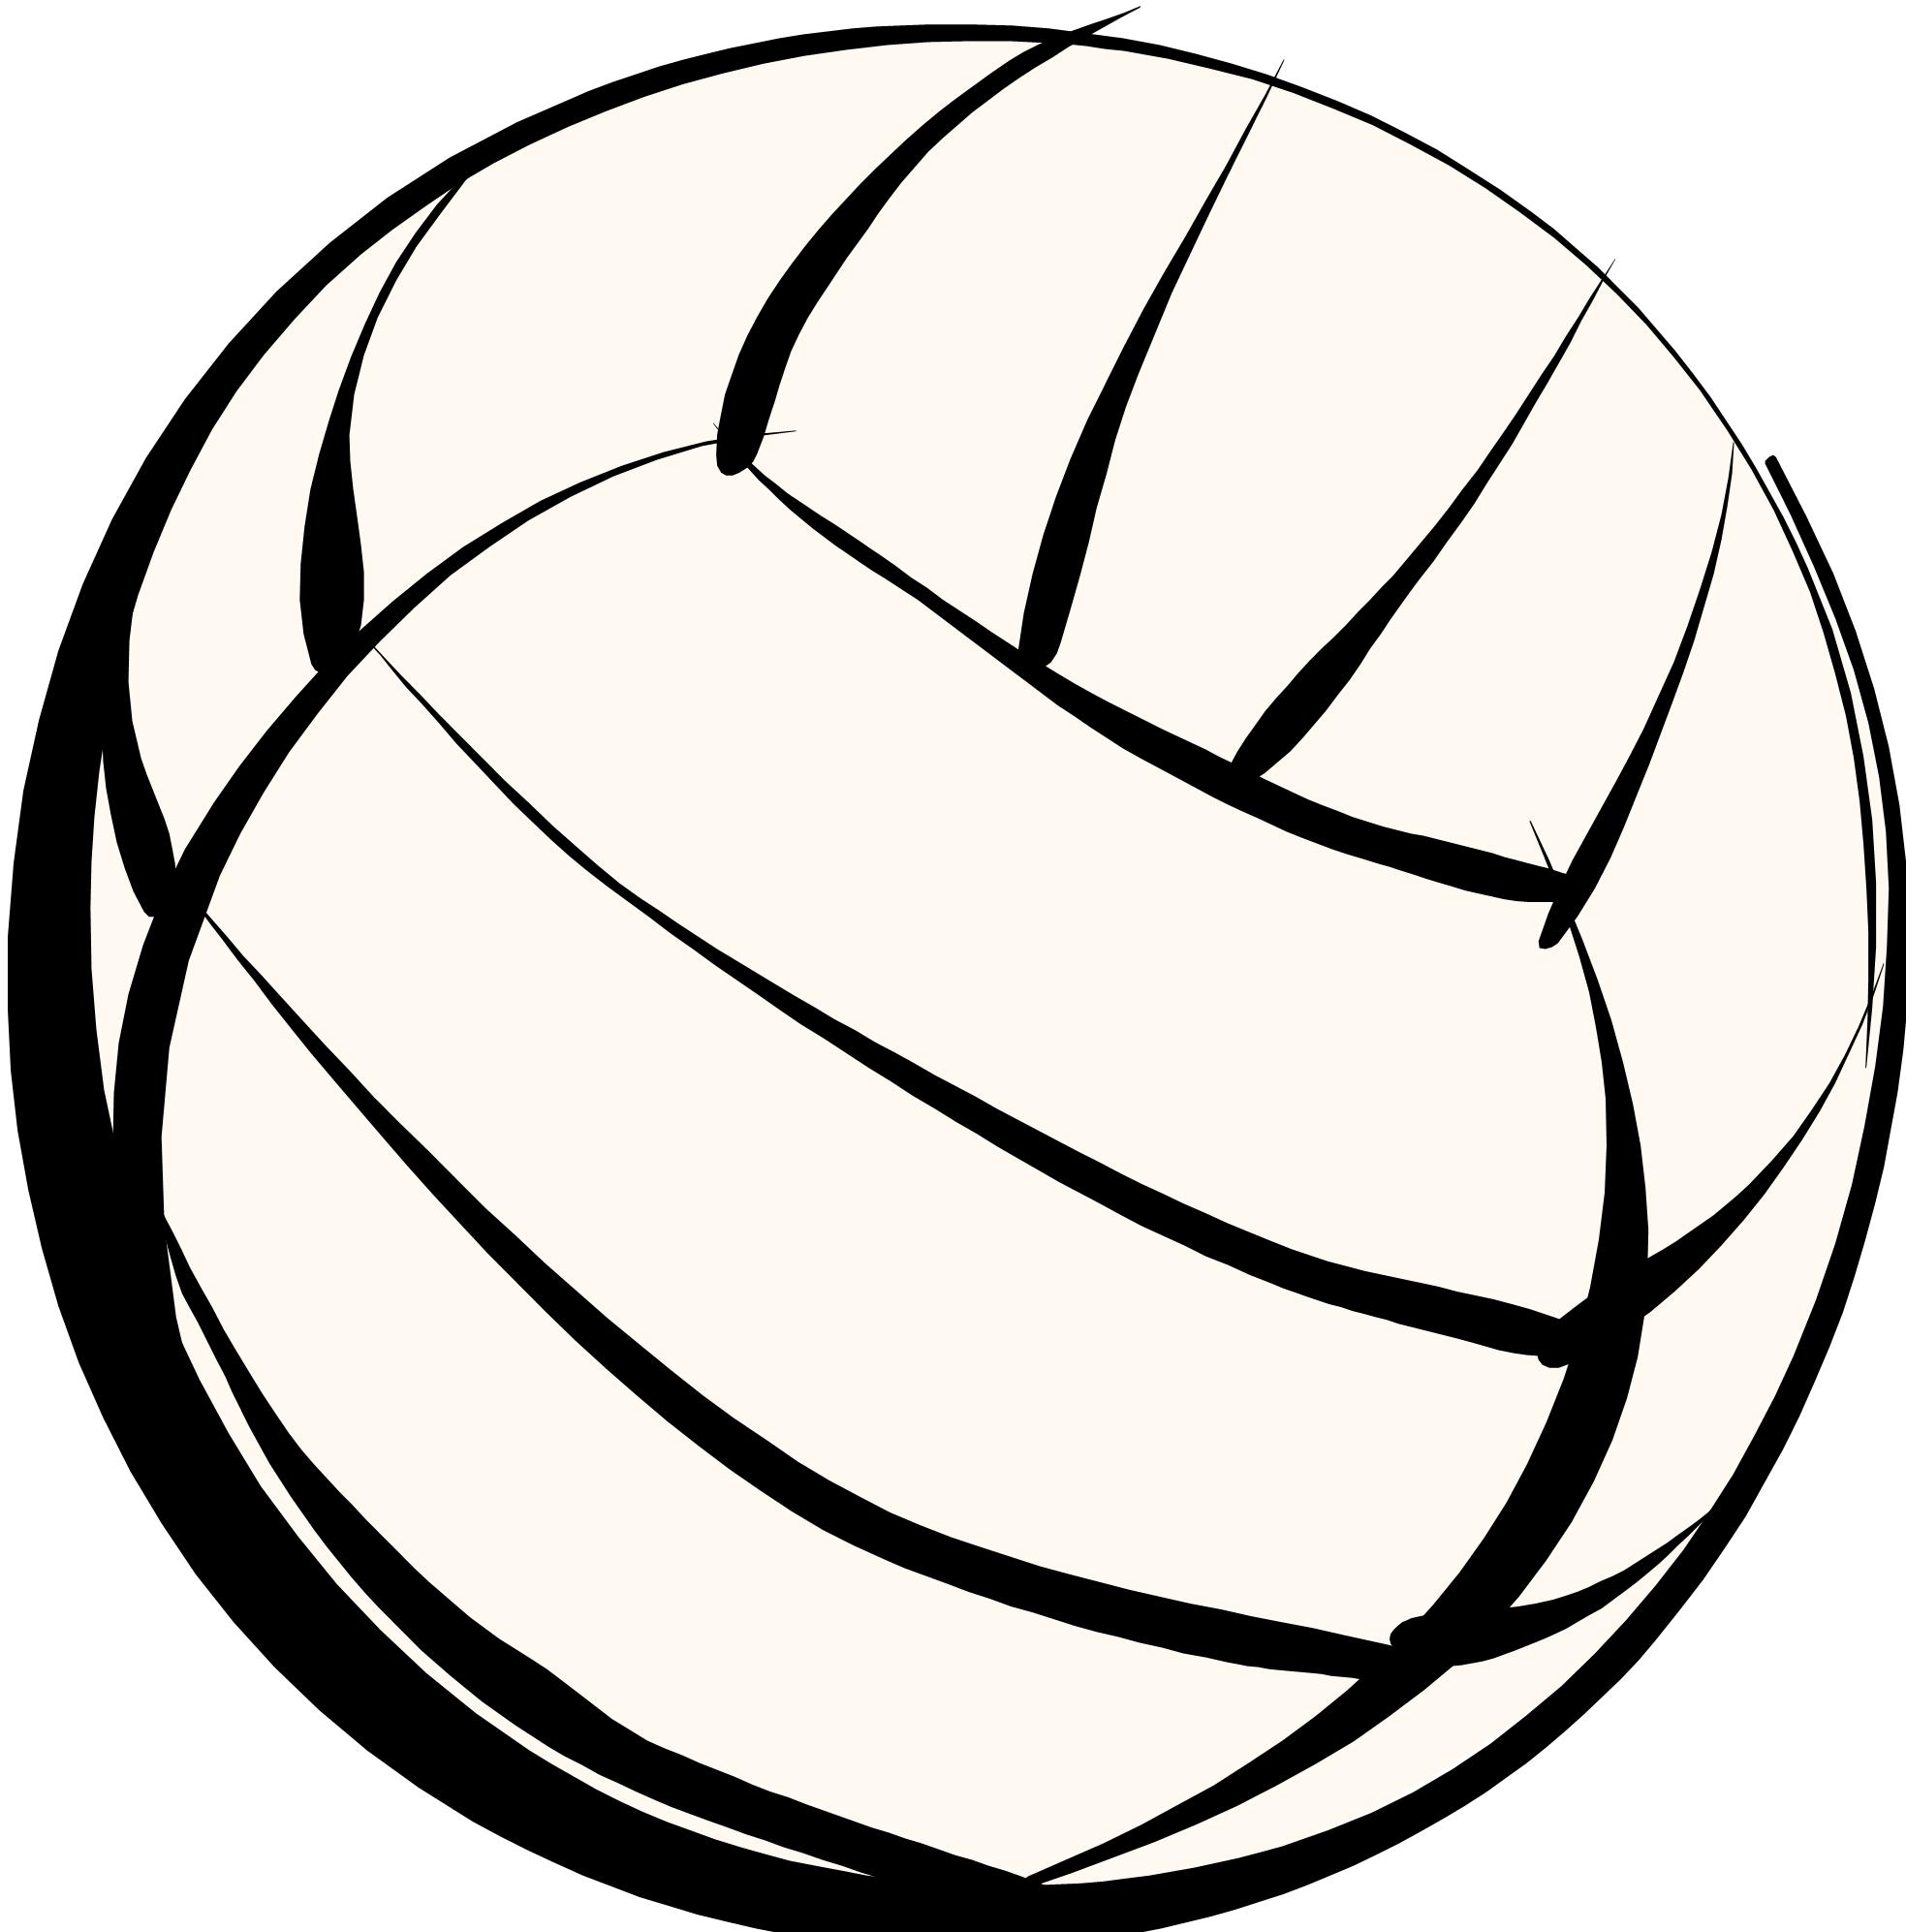 Clipart volleyball transparent background. Clip art library